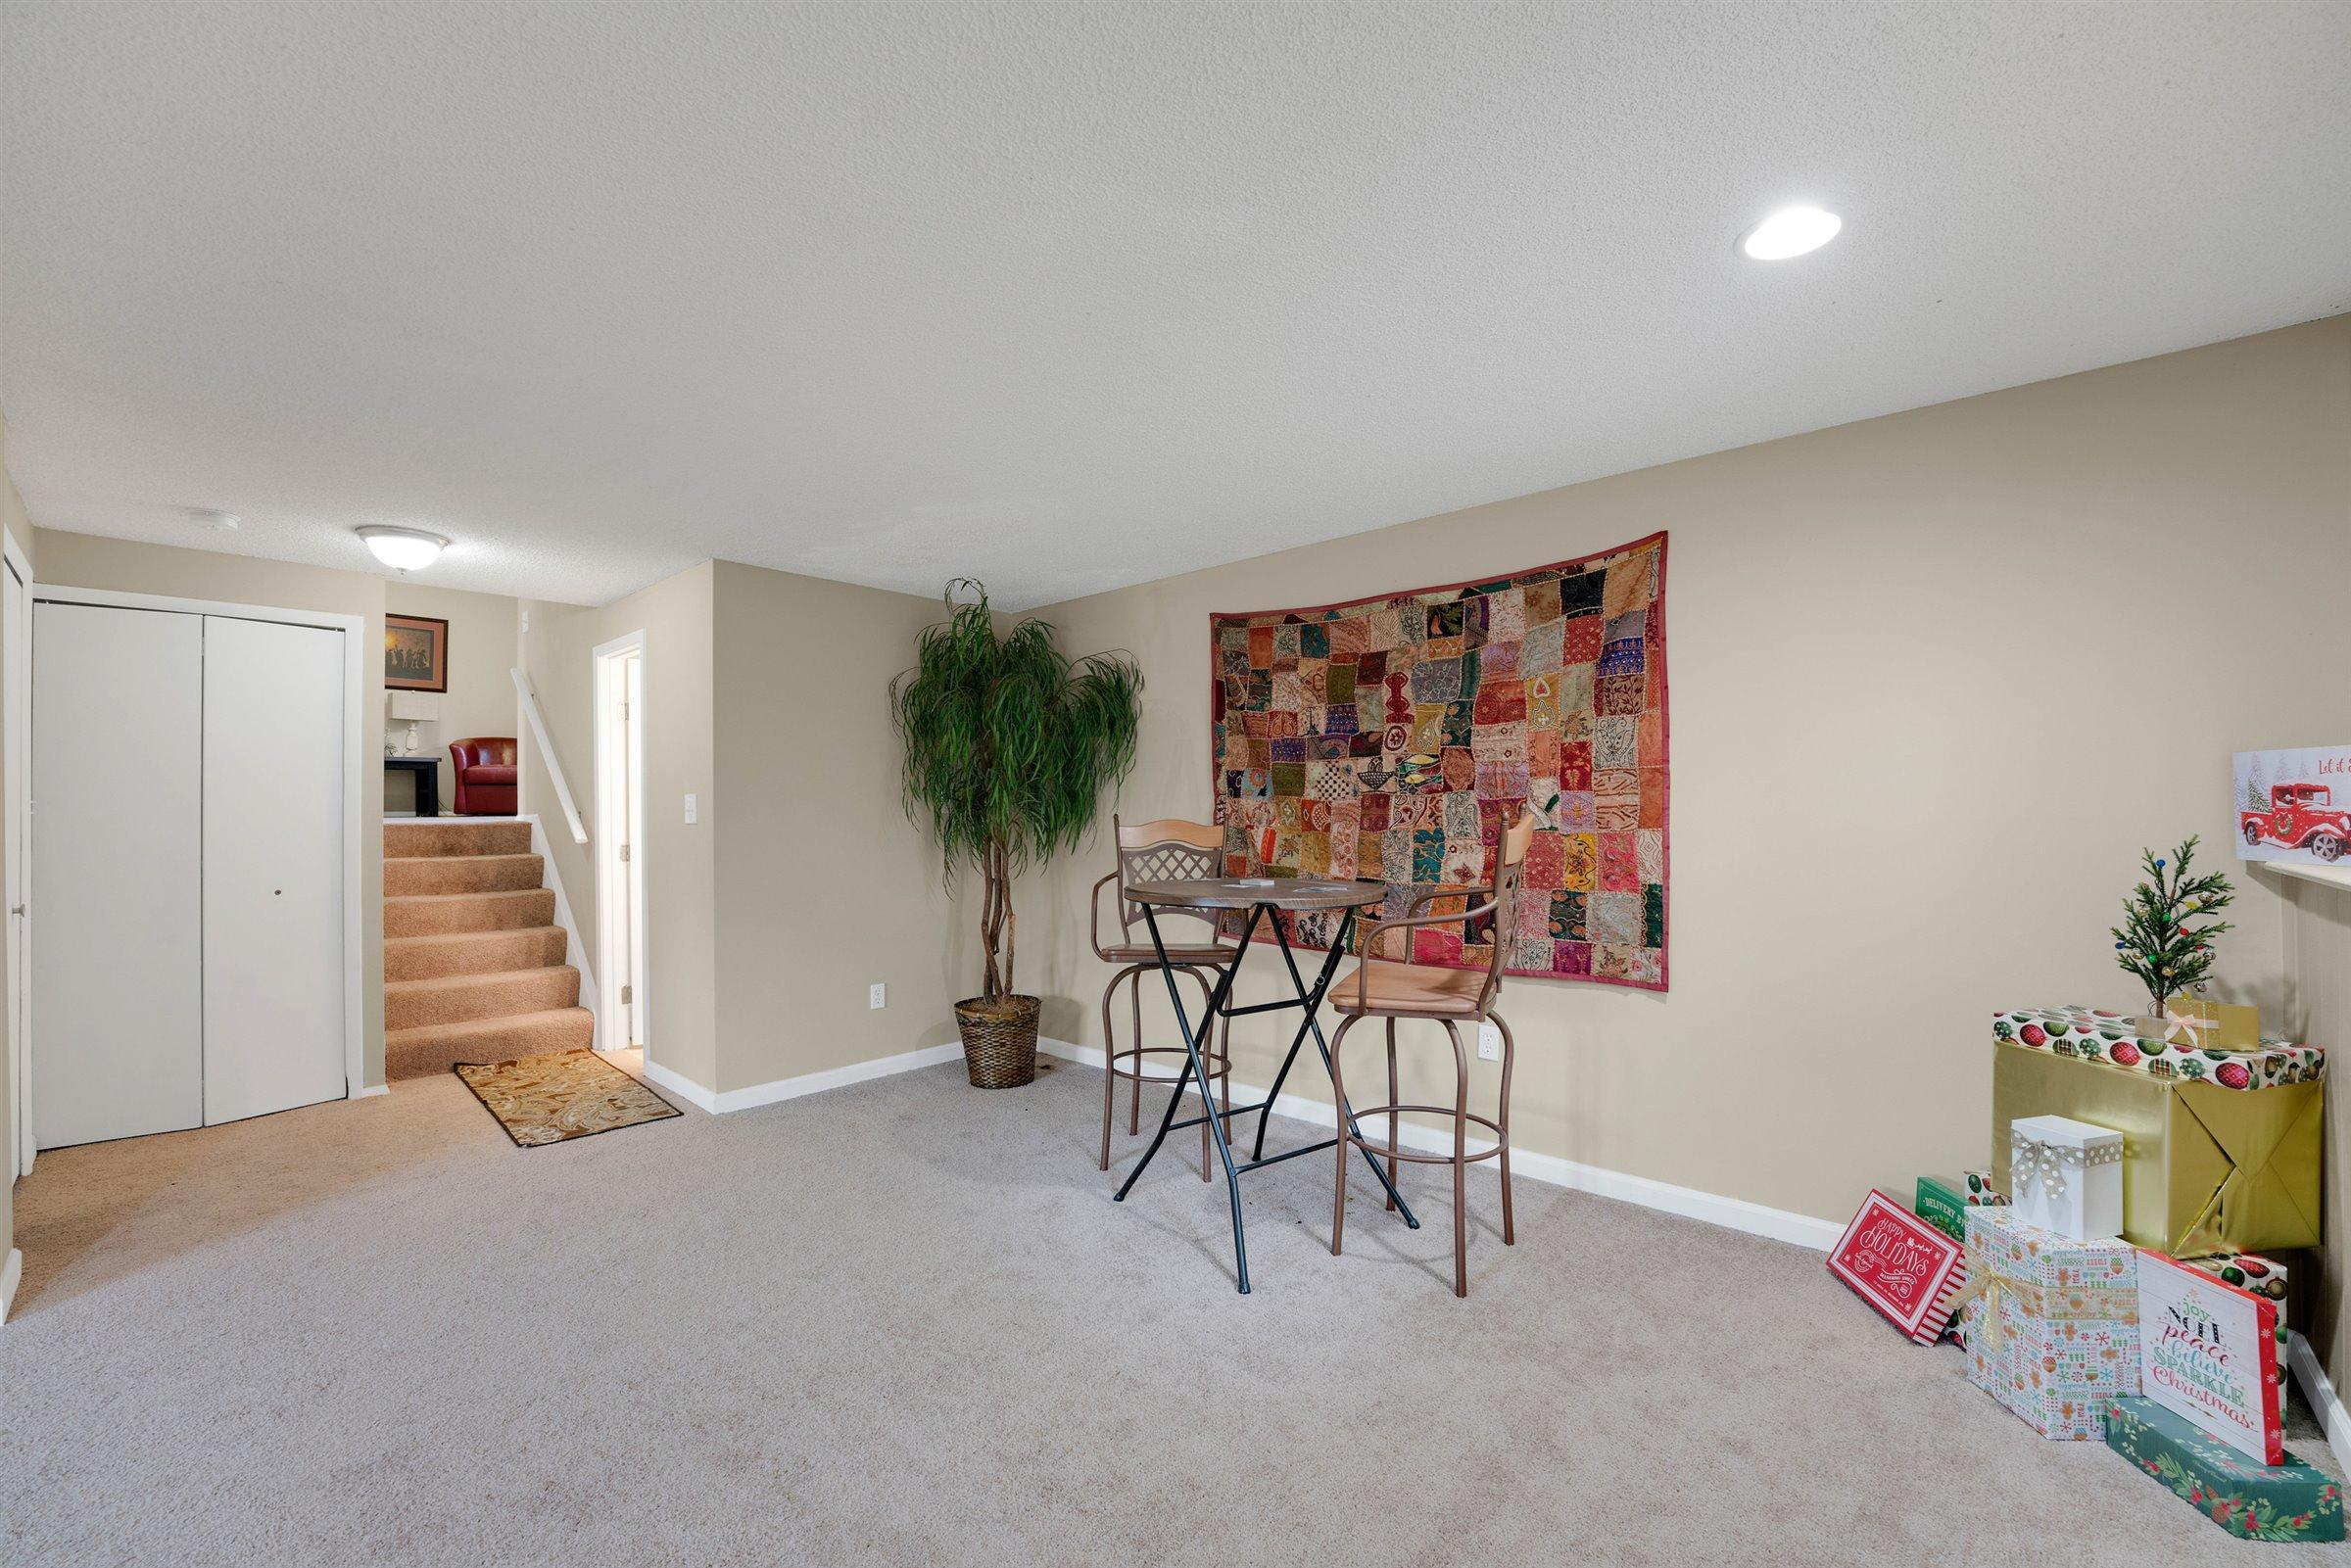 8503 Seabright Drive, Powell, Ohio 43065, 3 Bedrooms Bedrooms, ,2 BathroomsBathrooms,Residential,For Sale,Seabright,221000870